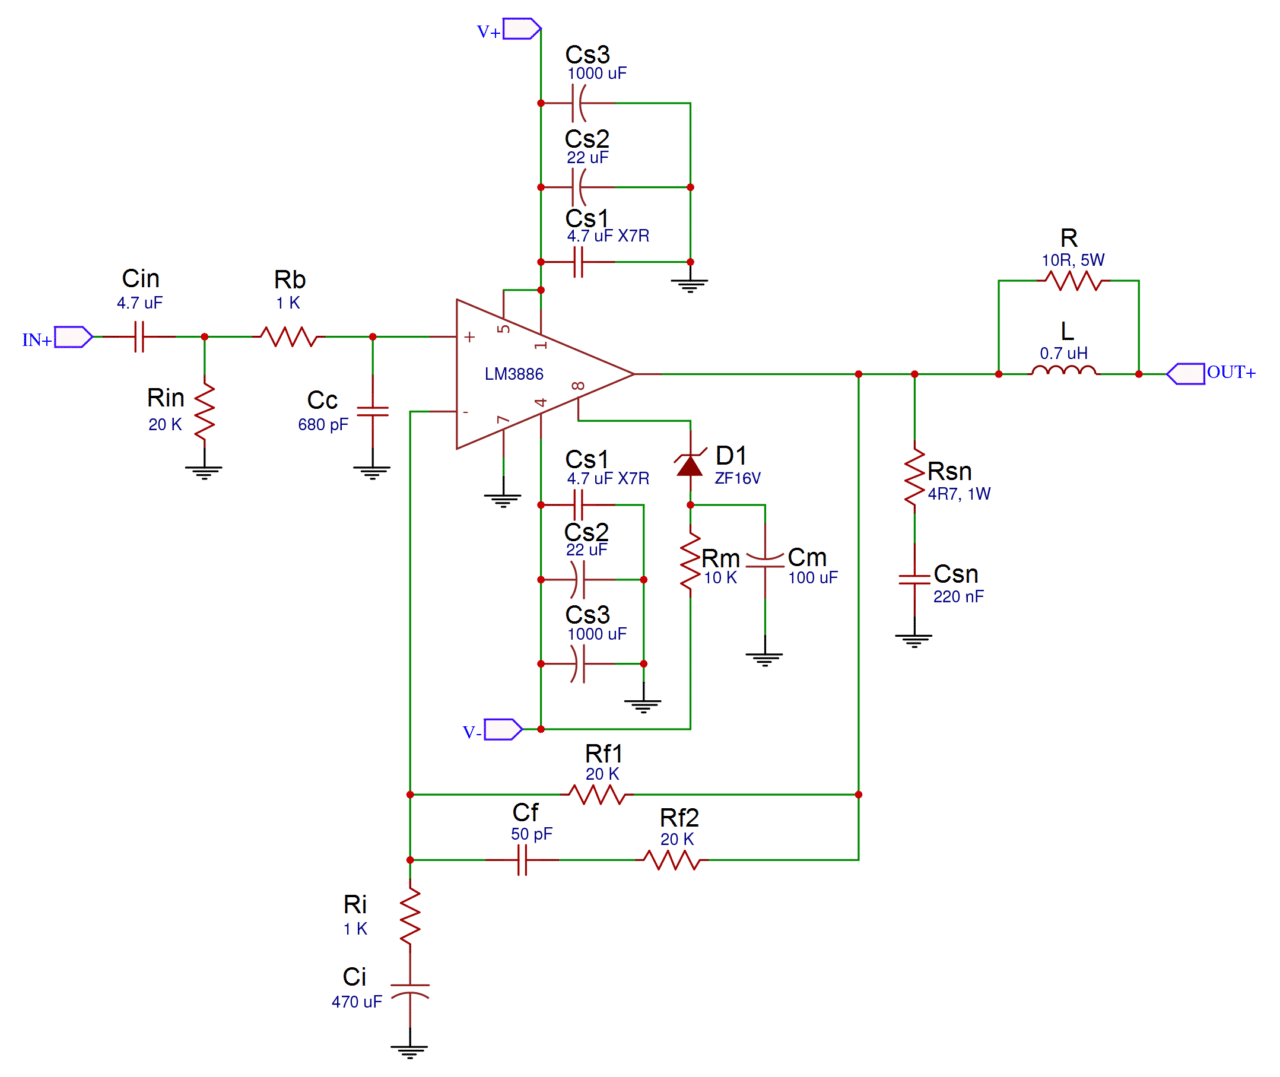 A Complete Guide To Design And Build Hi Fi Lm3886 Amplifier 2220 Bose Wiring Diagram Ill Be Using The Schematic Below Its Basically Same As One In Datasheet But With Optional Stability Components Included